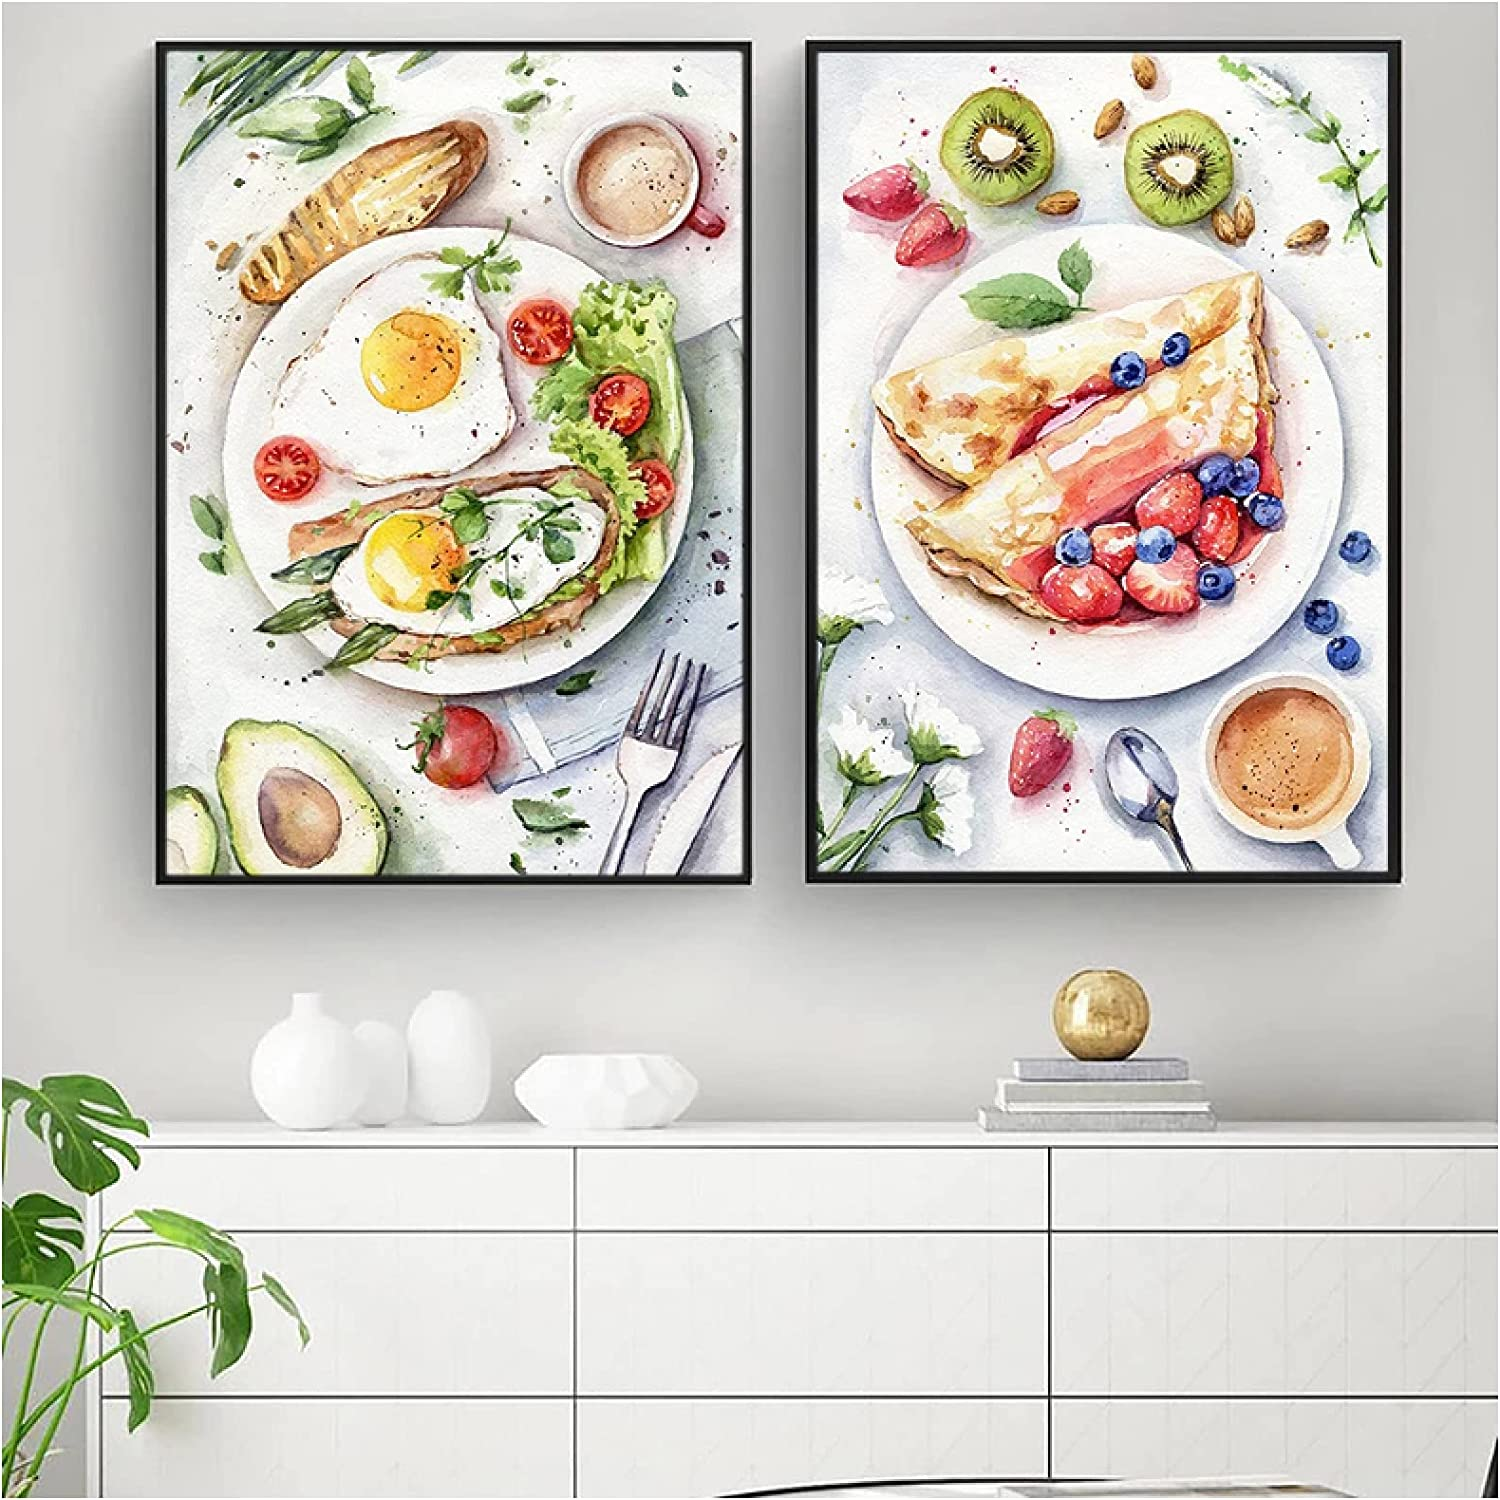 Tbdiberc Kitchen Watercolor Funny Posters and Prints Foods Fruits Canvas Wall Pictures Brunch Breakfast Art Painting Dingroom Decor Gifts Posters -50X70Cmx2 No Frame